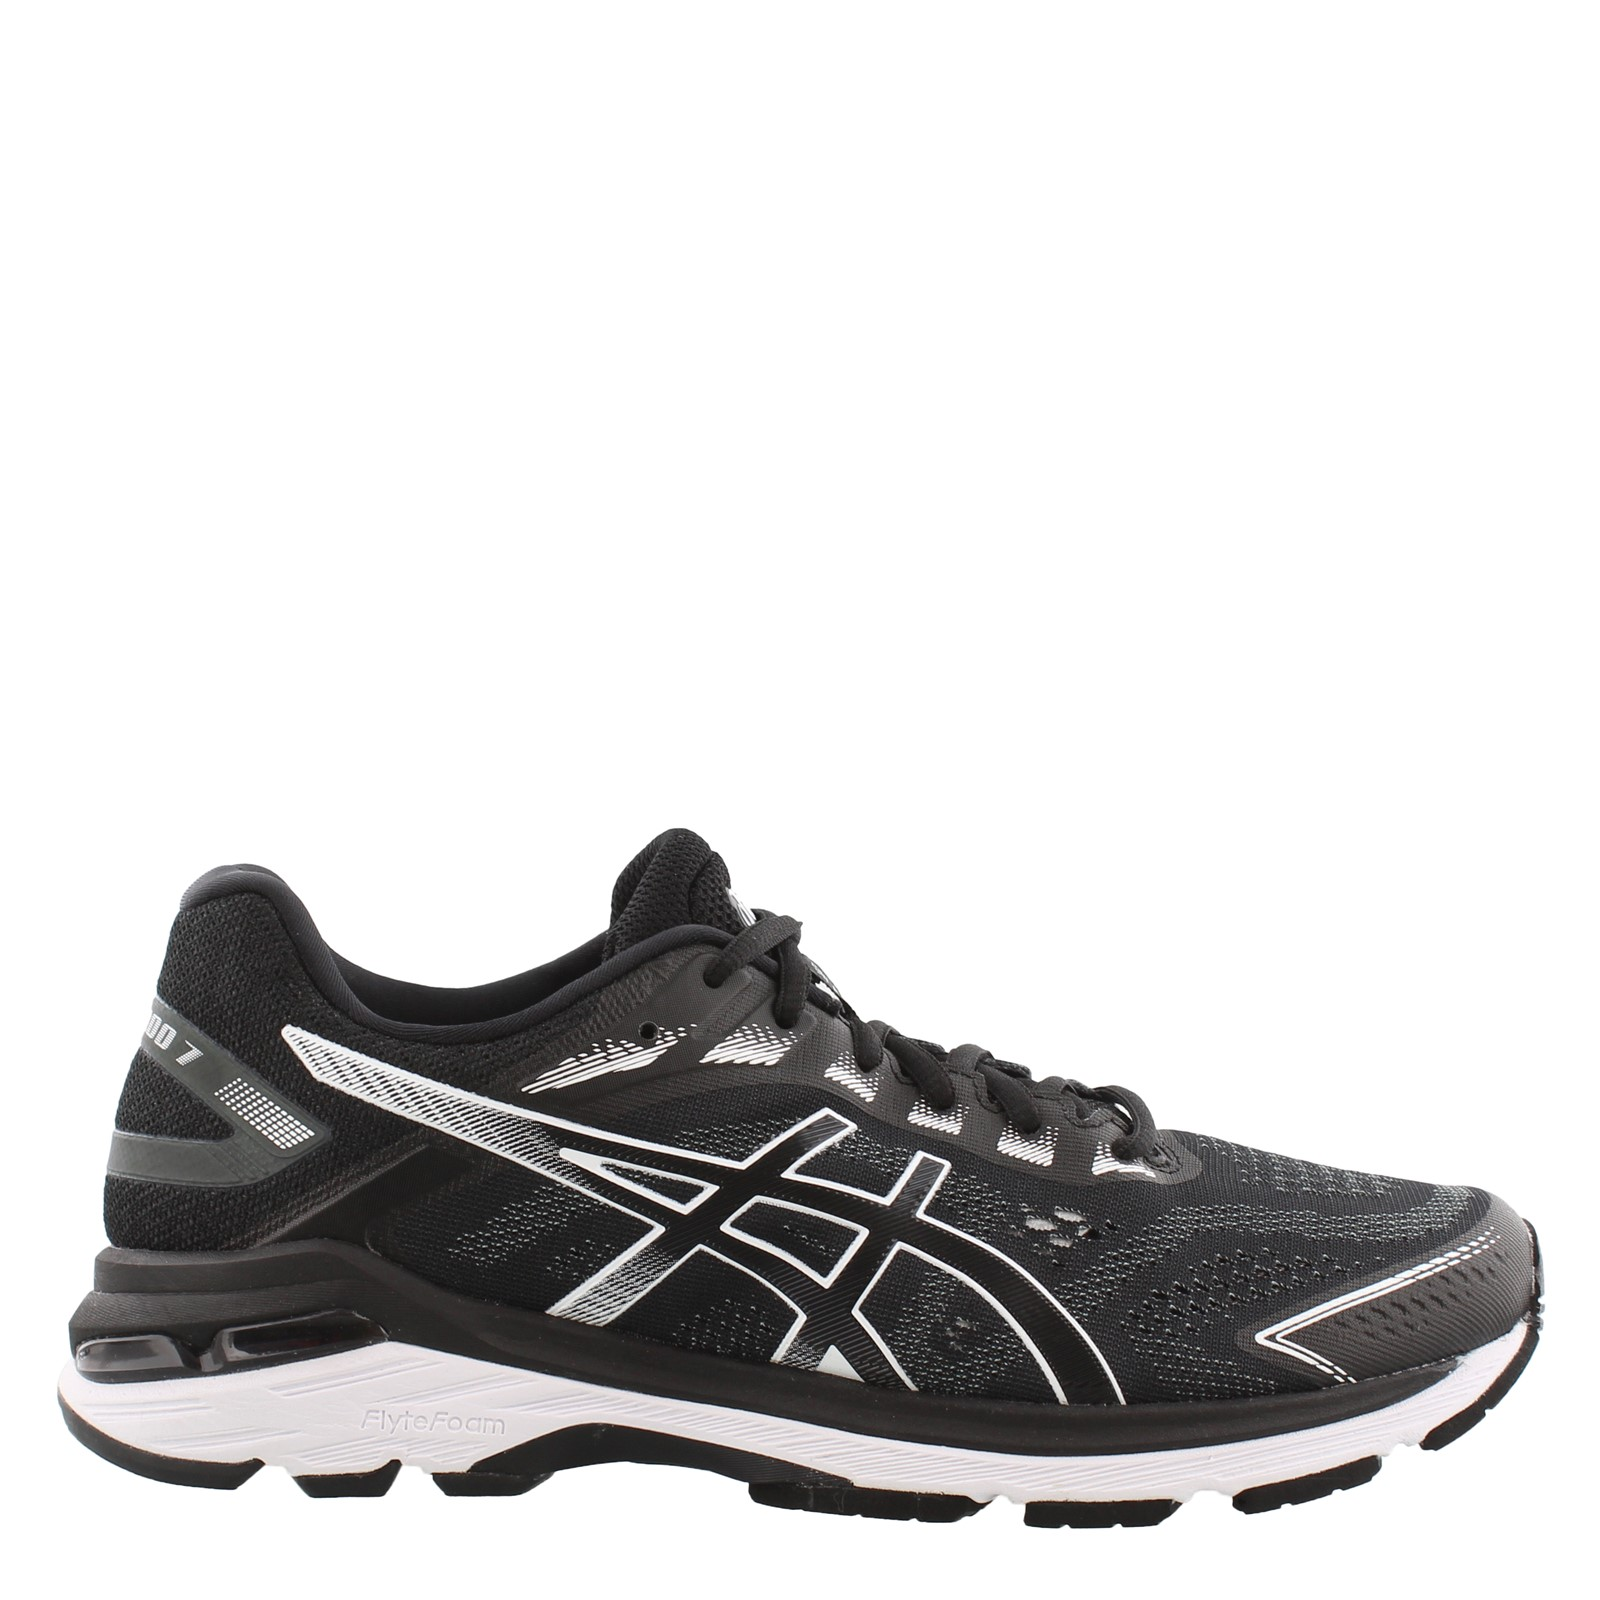 Men's Asics, GT 2000 7 Running Sneakers